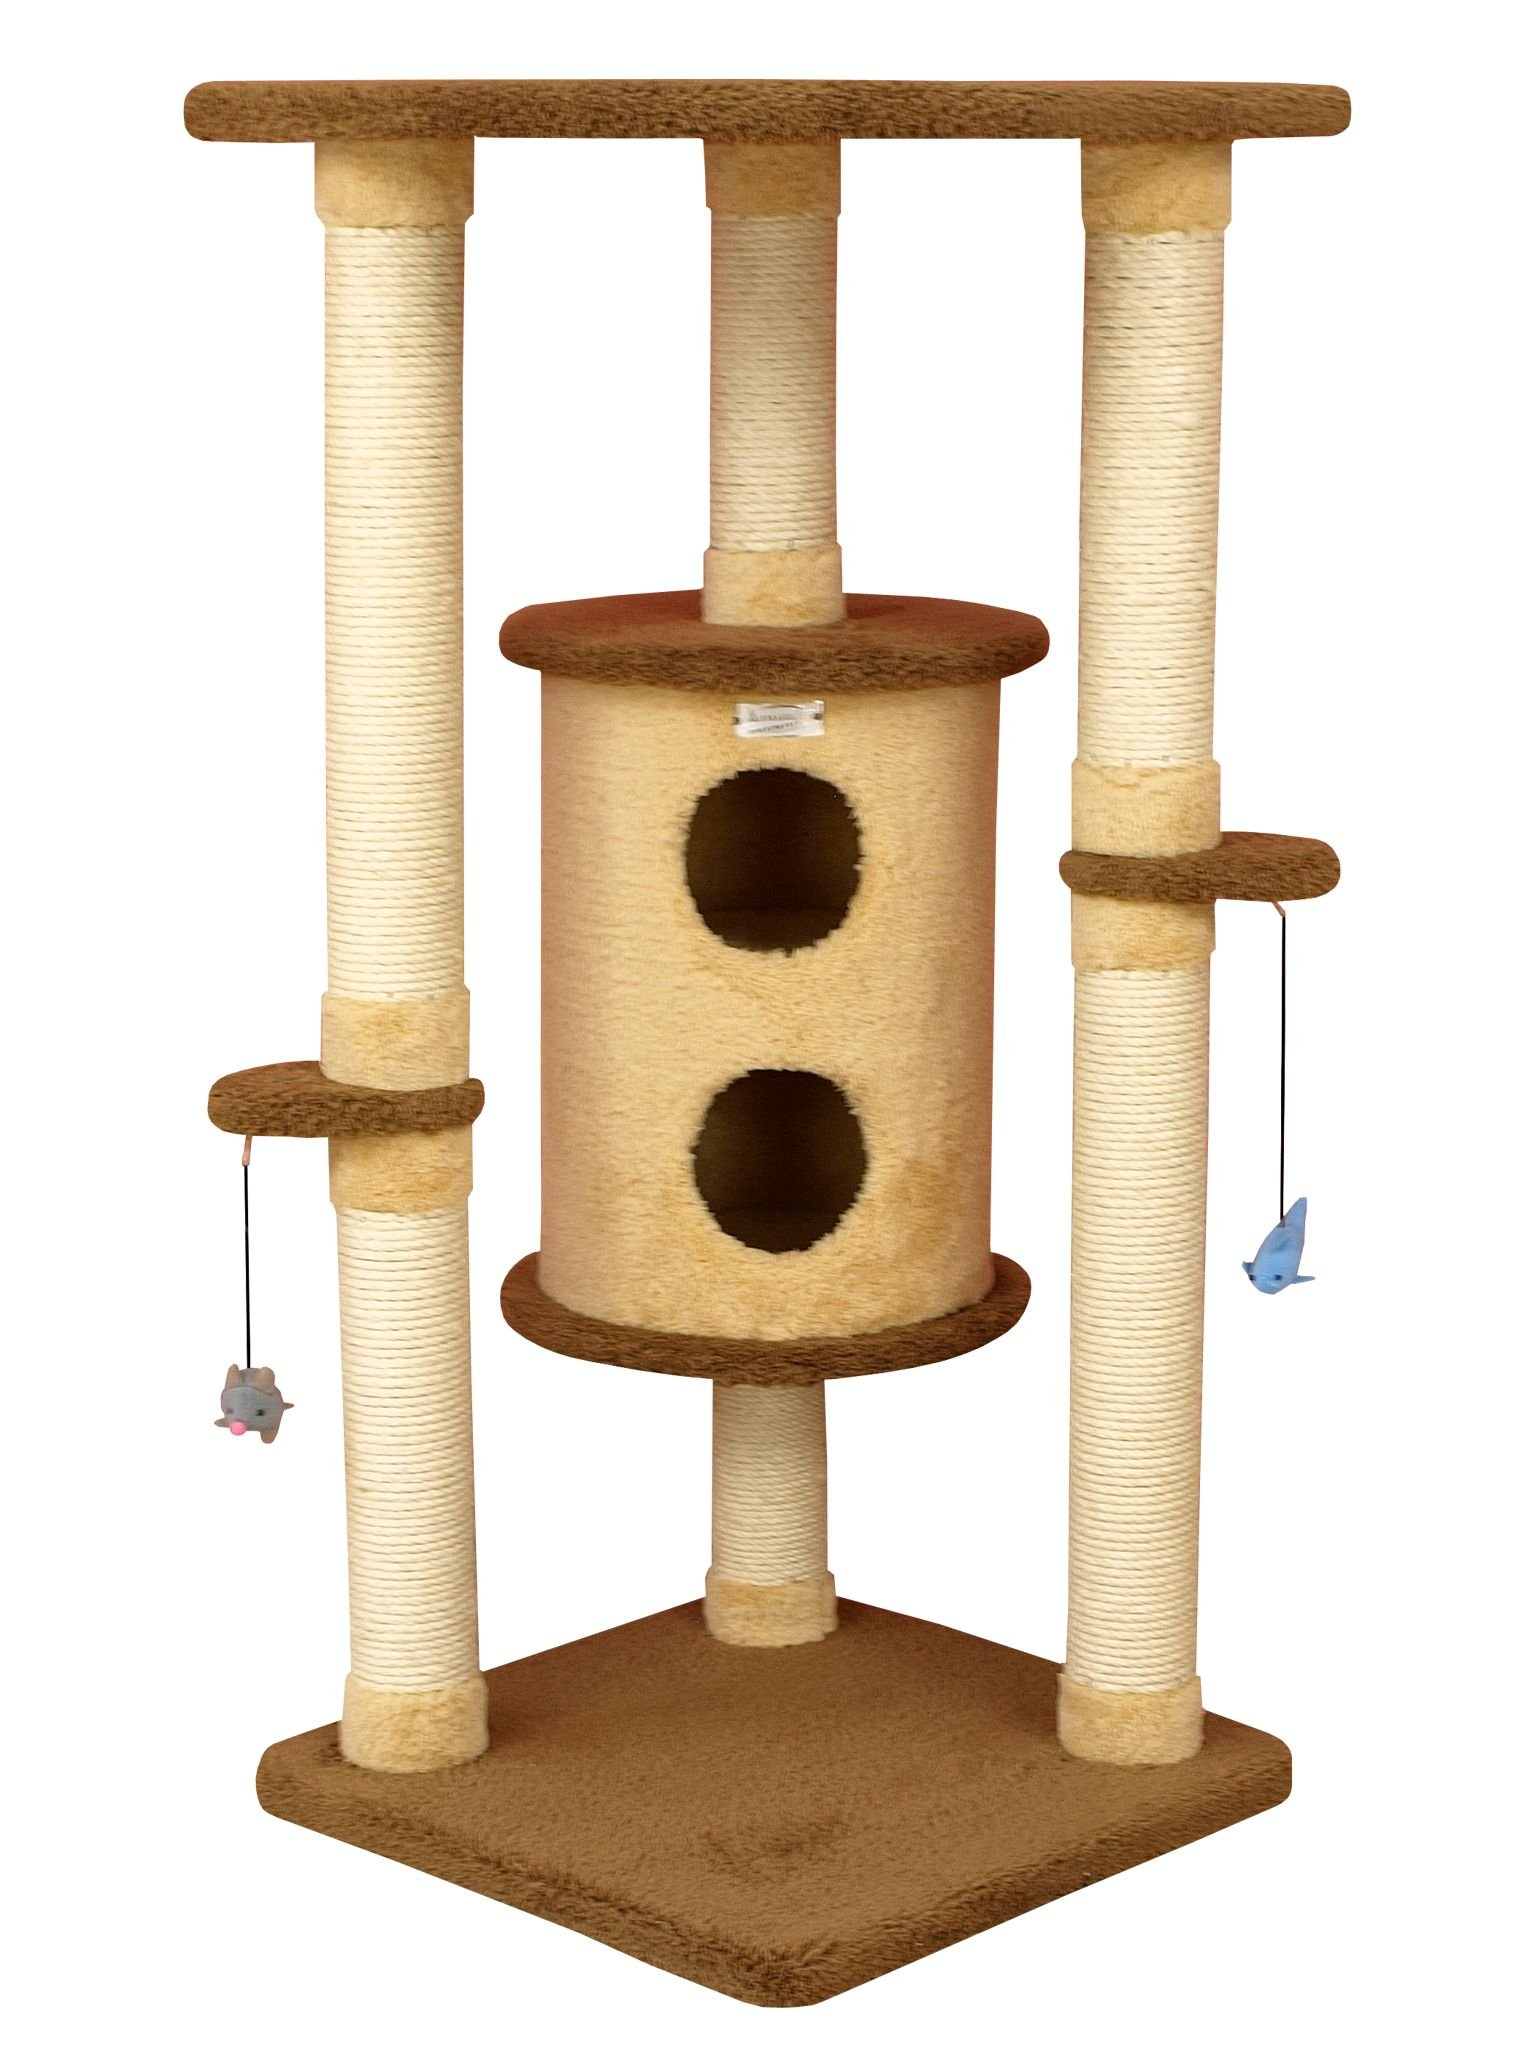 Armarkat Premium Cat Tree Model X4401, Goldenrod & Tan by Armarkat